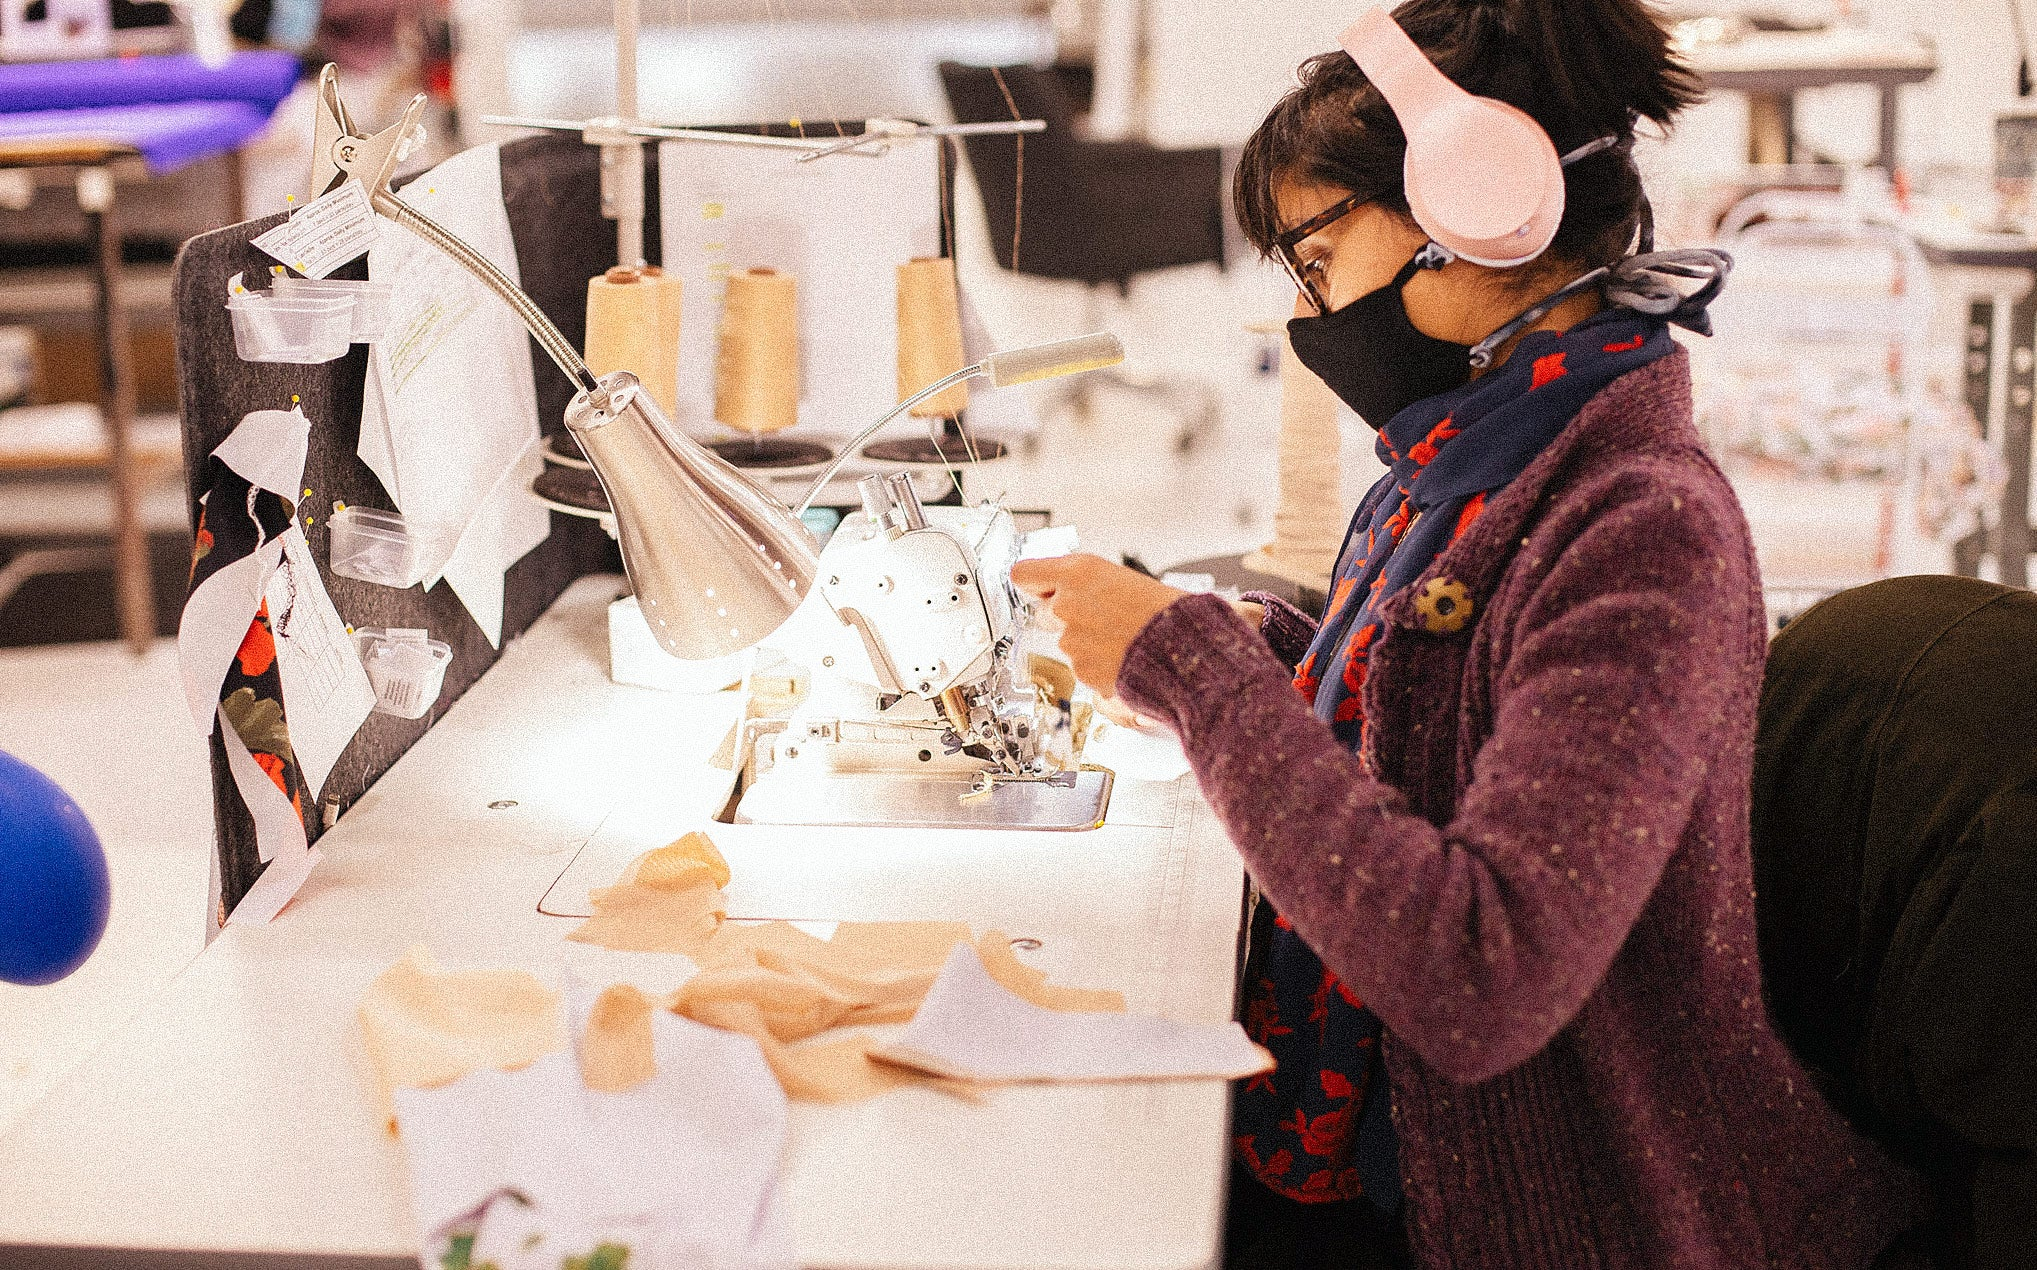 A sewist sits profile to the camera wearing a face mask, glasses and pink headphones as she sews.